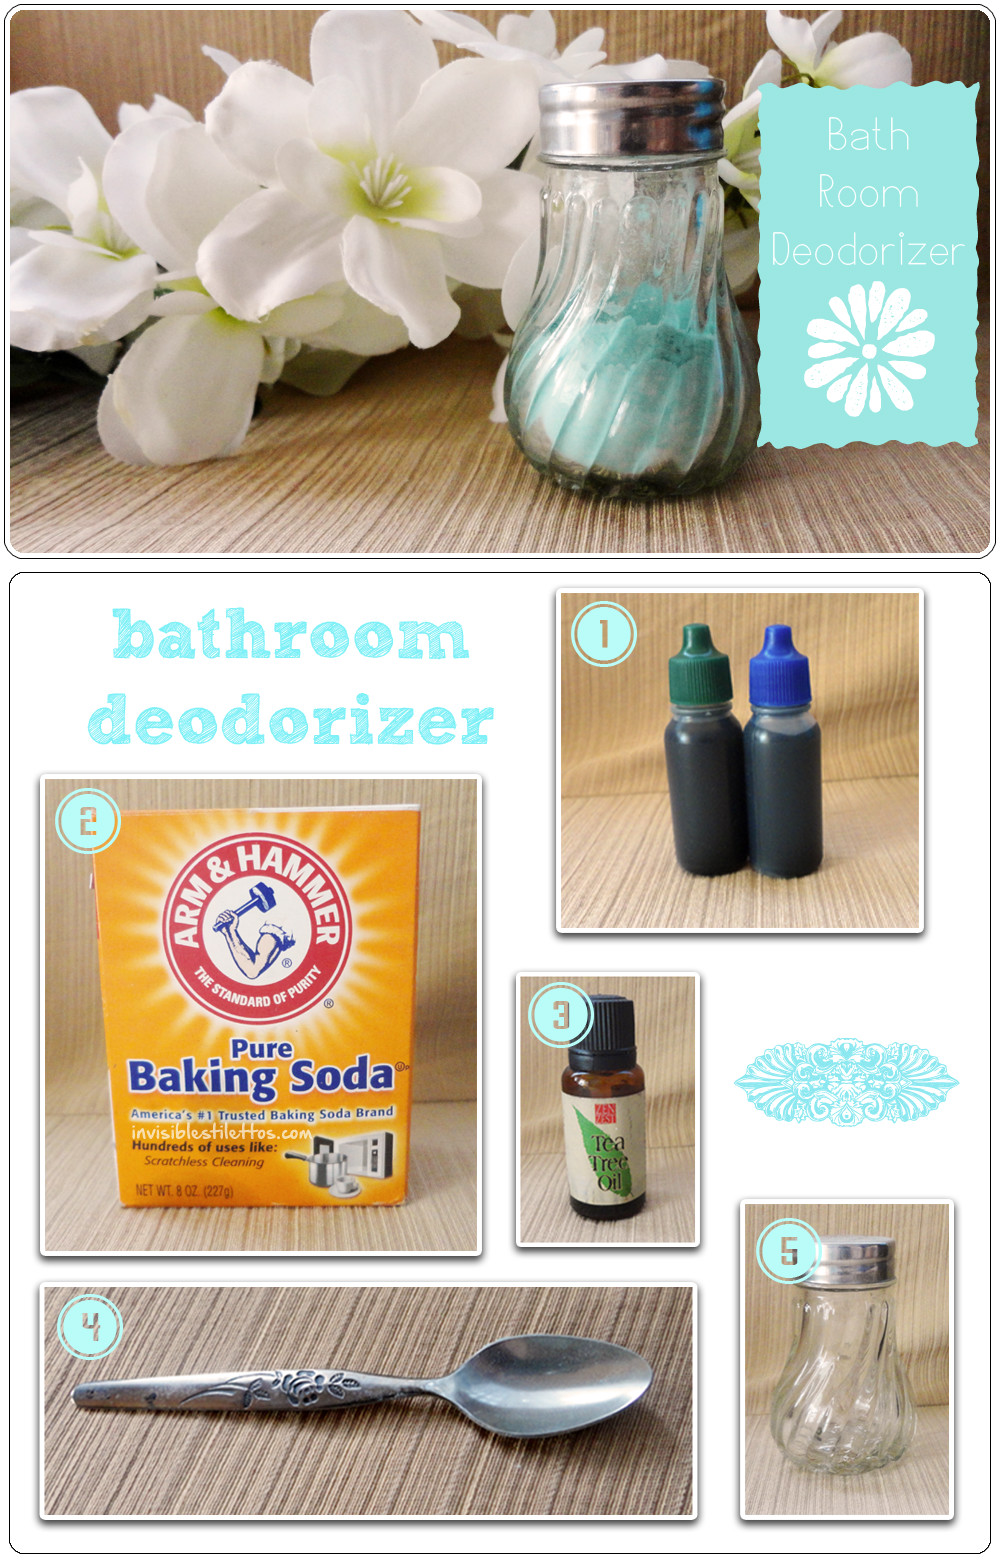 Homemade bathroom deodorizer spray